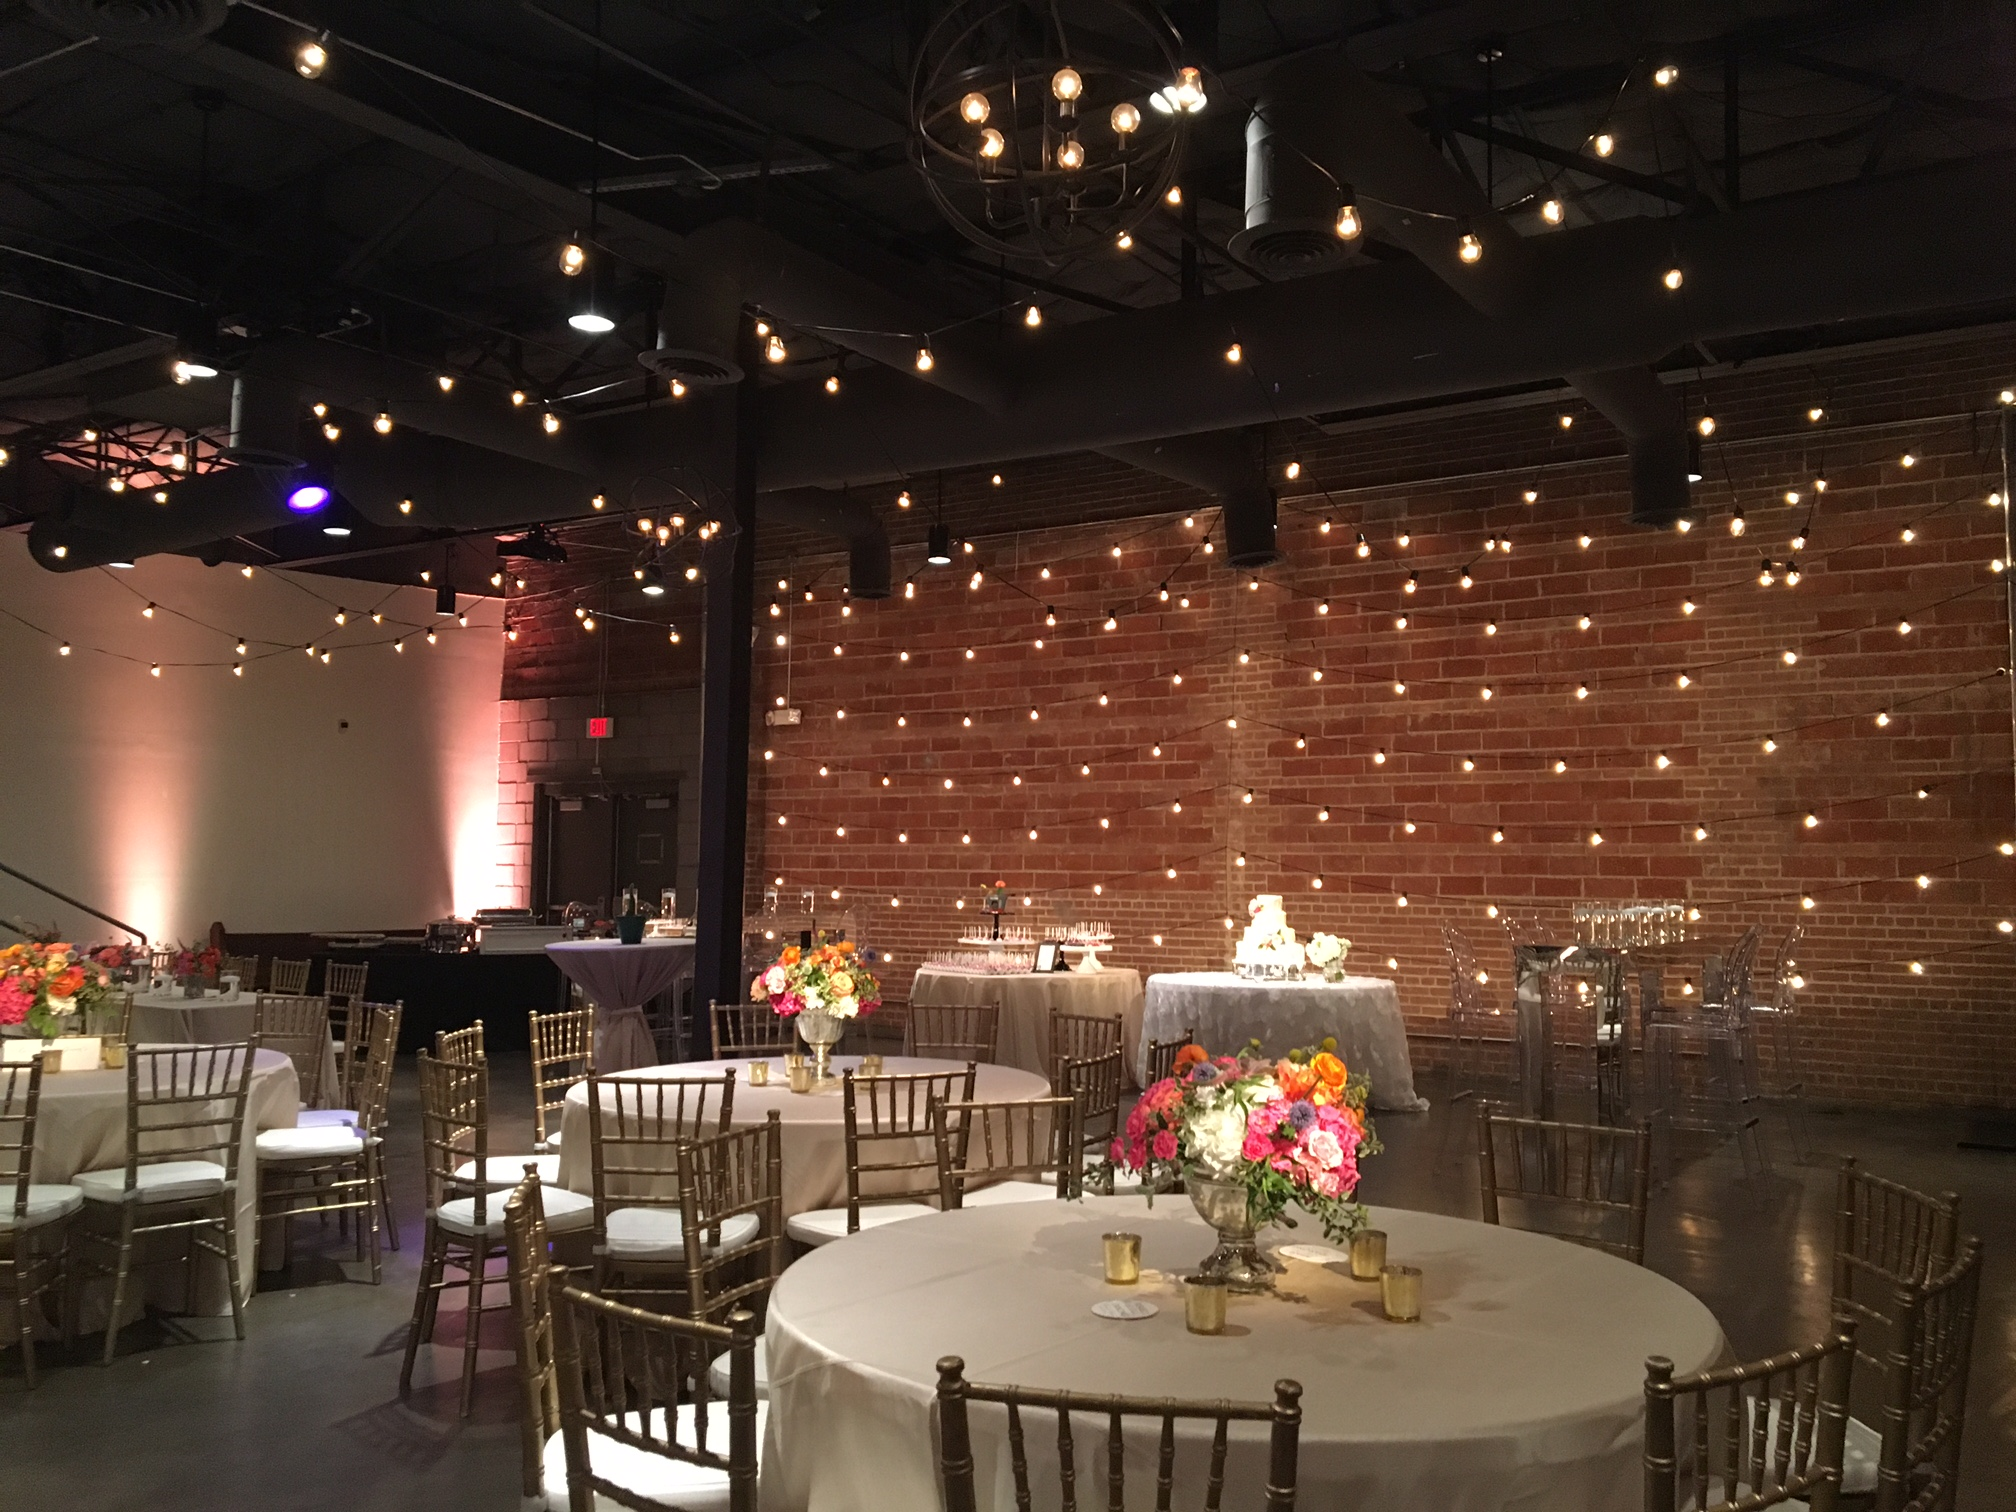 BEYOND Lighting design warm ambiance highlights_IMG_4562